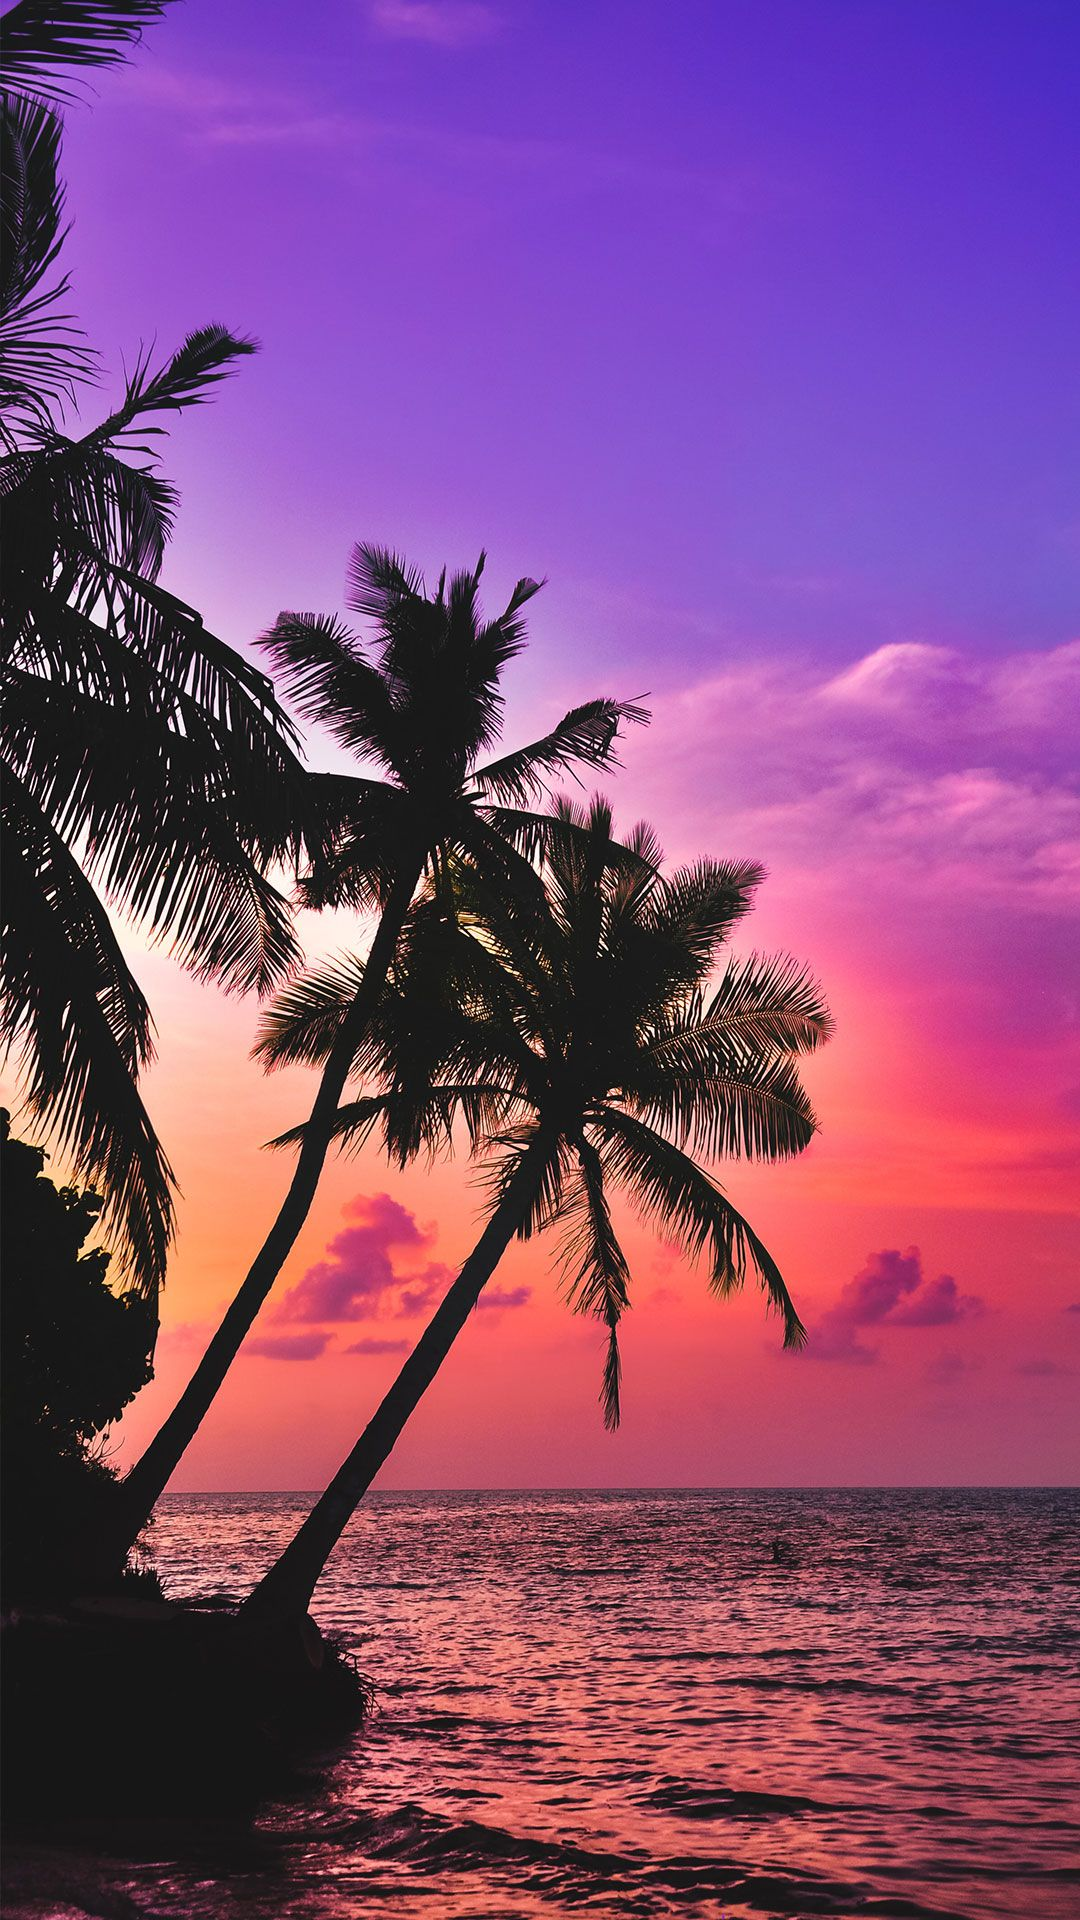 116 Free Beach Wallpapers For Your Phone Desktop Beach Wallpaper Sunset Wallpaper Palm Tree Sunset